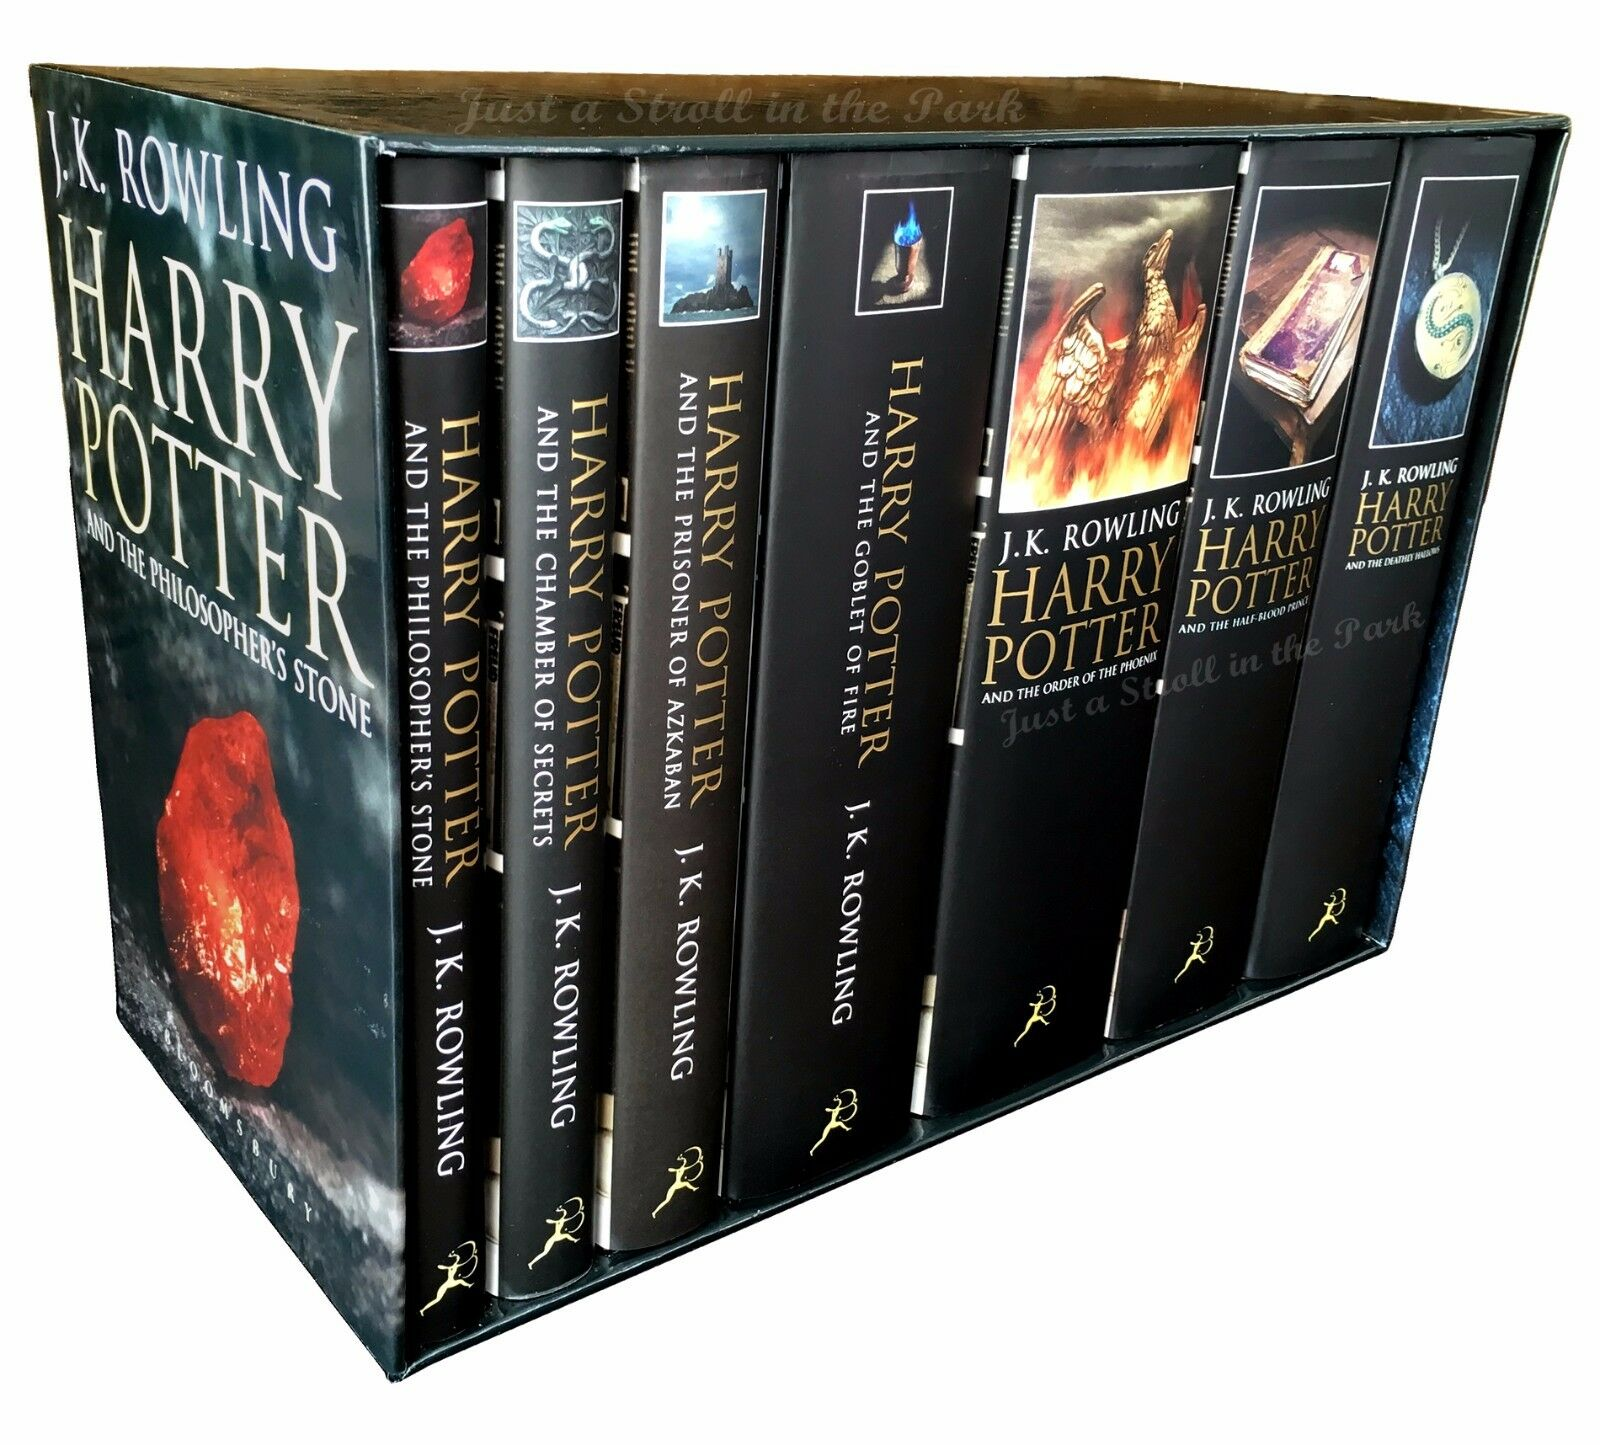 Harry Potter Book Cover Uk ~ Harry potter complete series uk adult edition hardcover box set